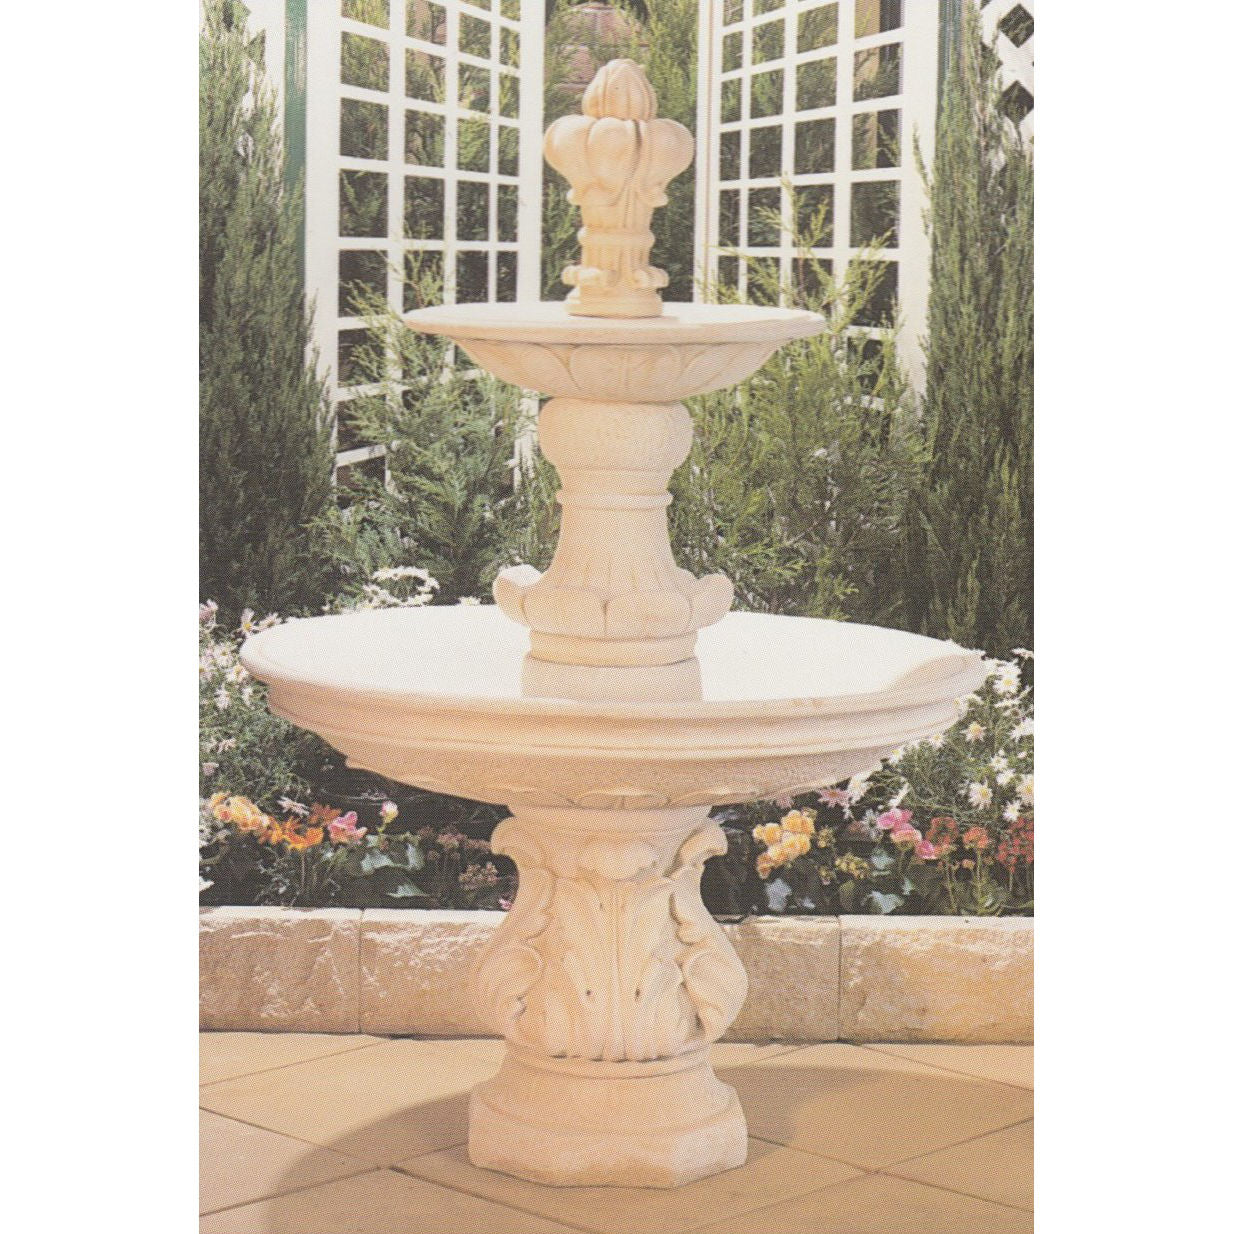 2-Tier Water Features